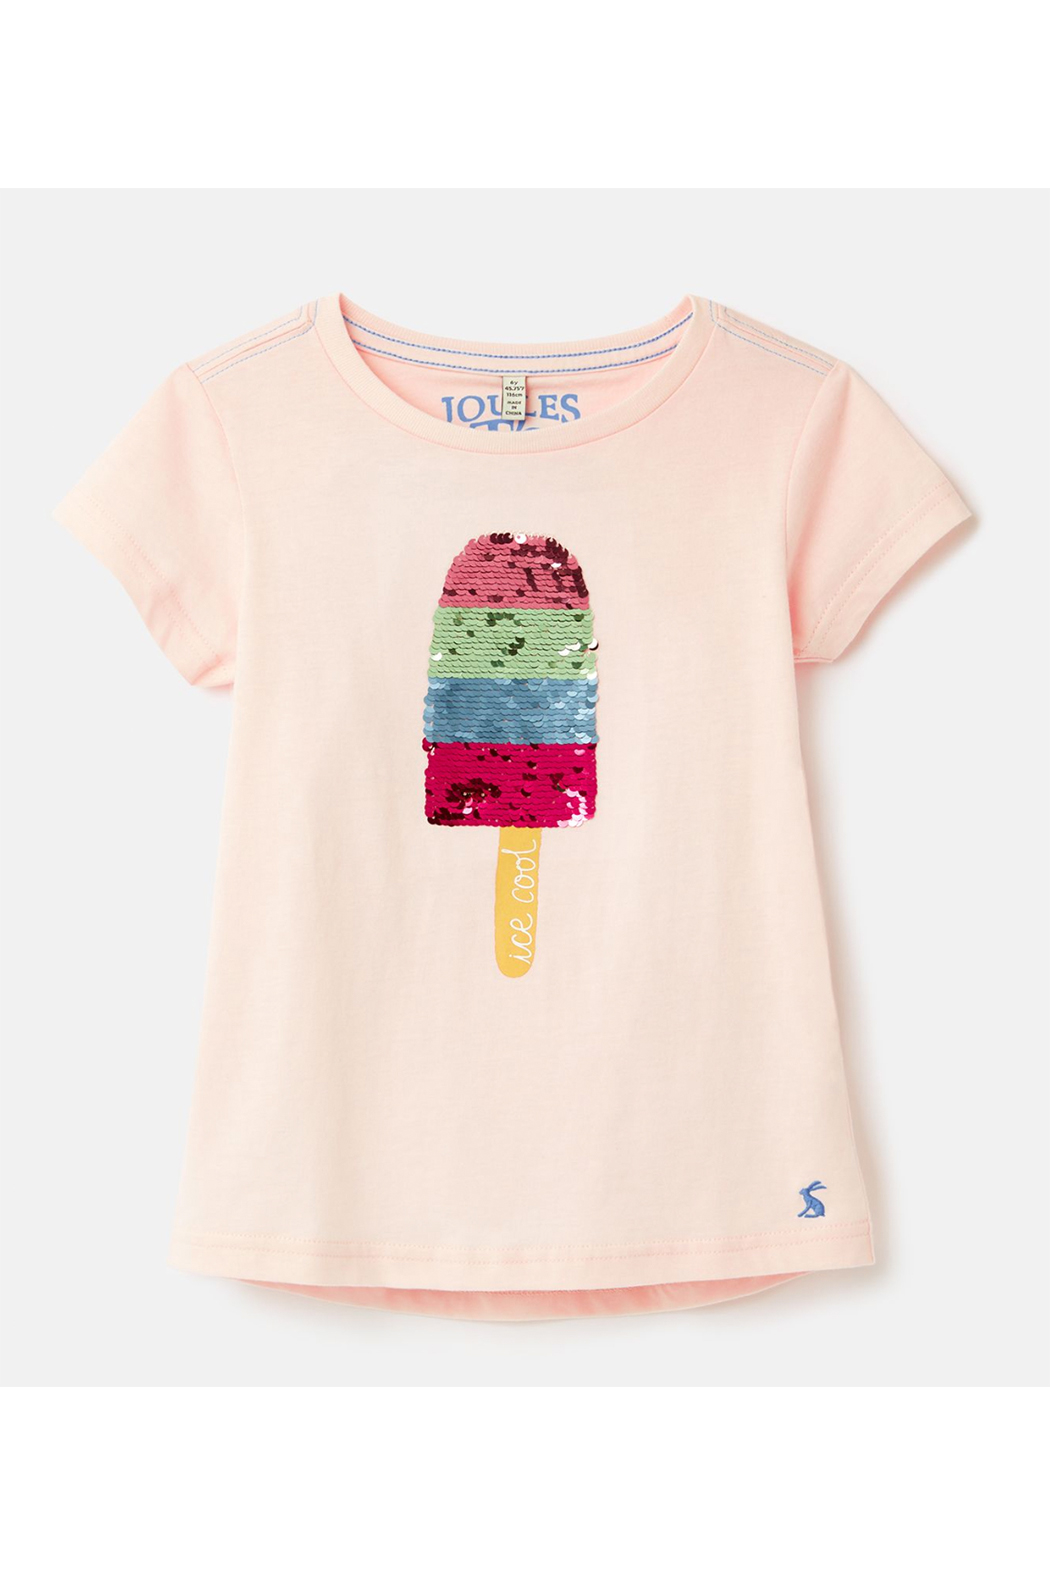 Joules Astra Applique T-Shirt 3-12 Years - Main Image